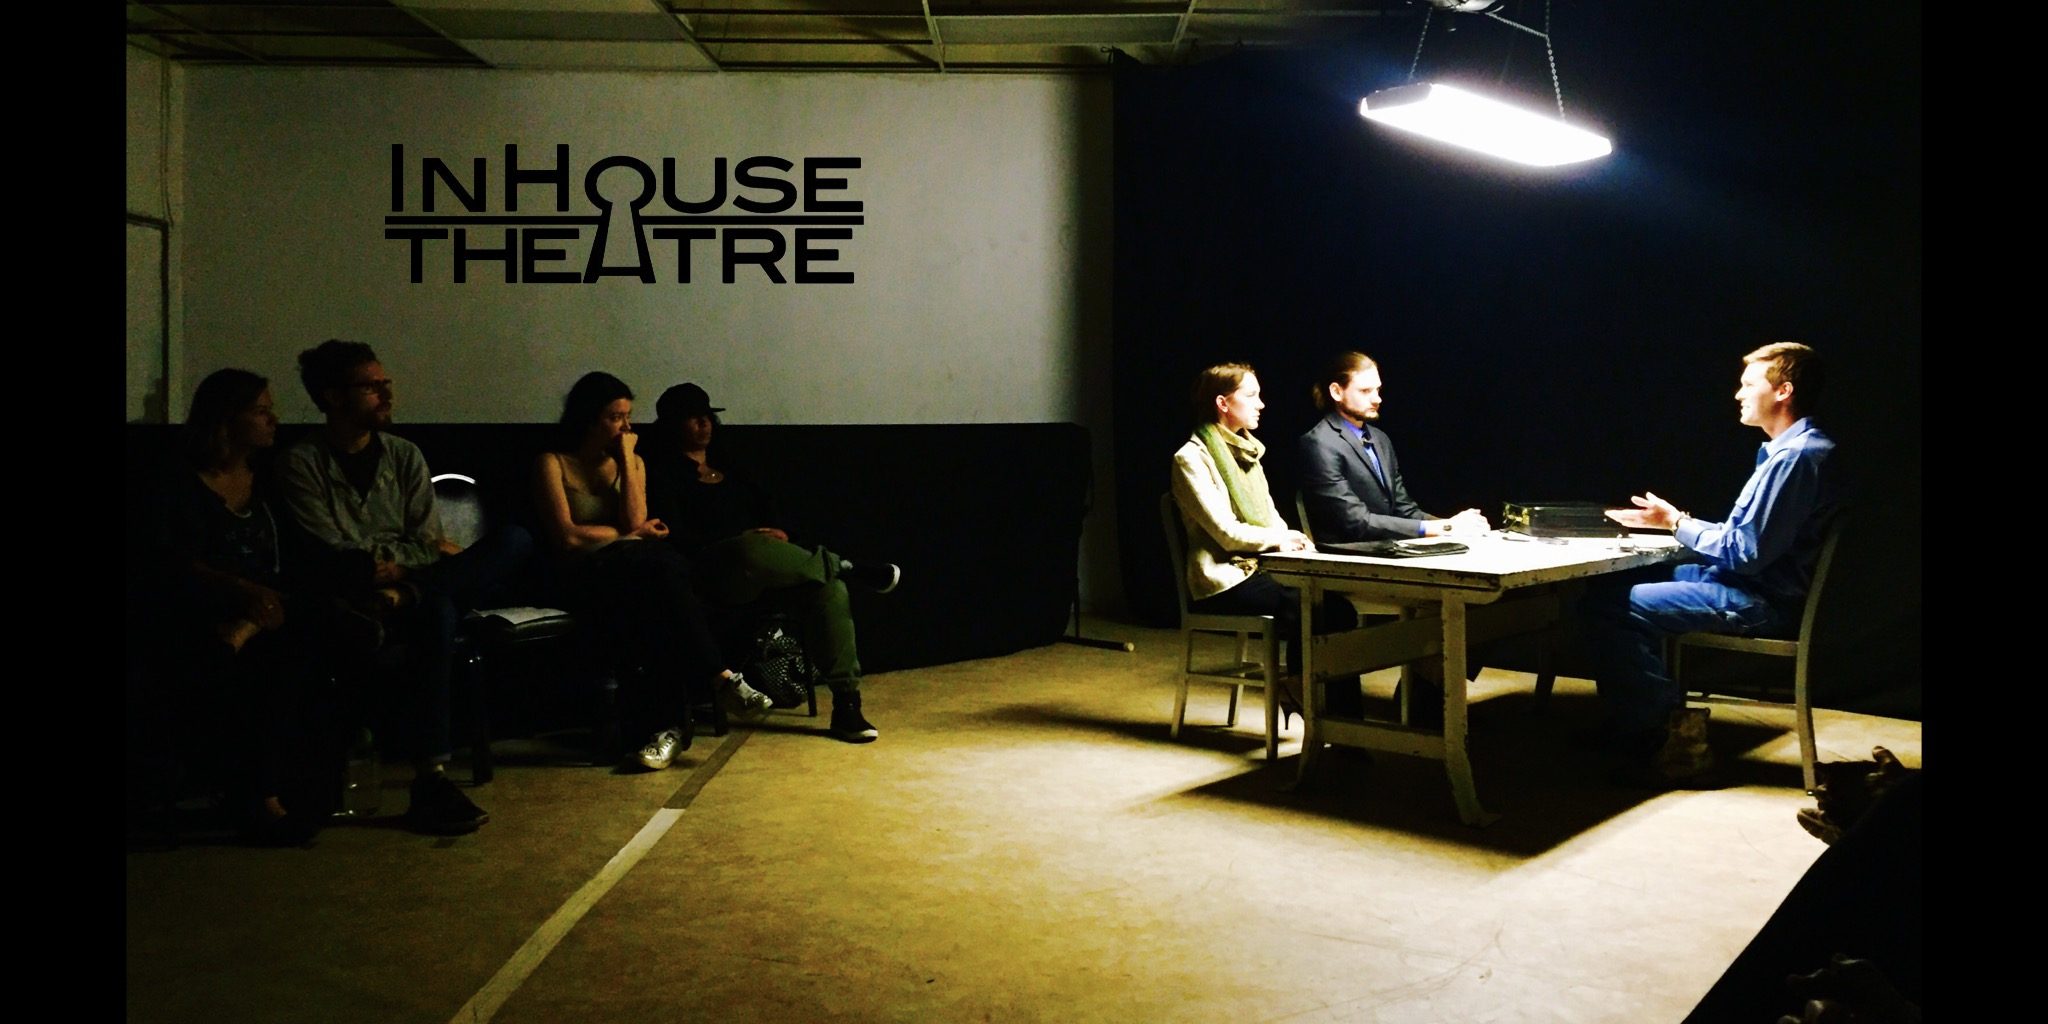 This three person drama features the acting of Elizabeth Schmidt, Rob Welsh and Bryce McBratnie. Directed by Drew Rausch.